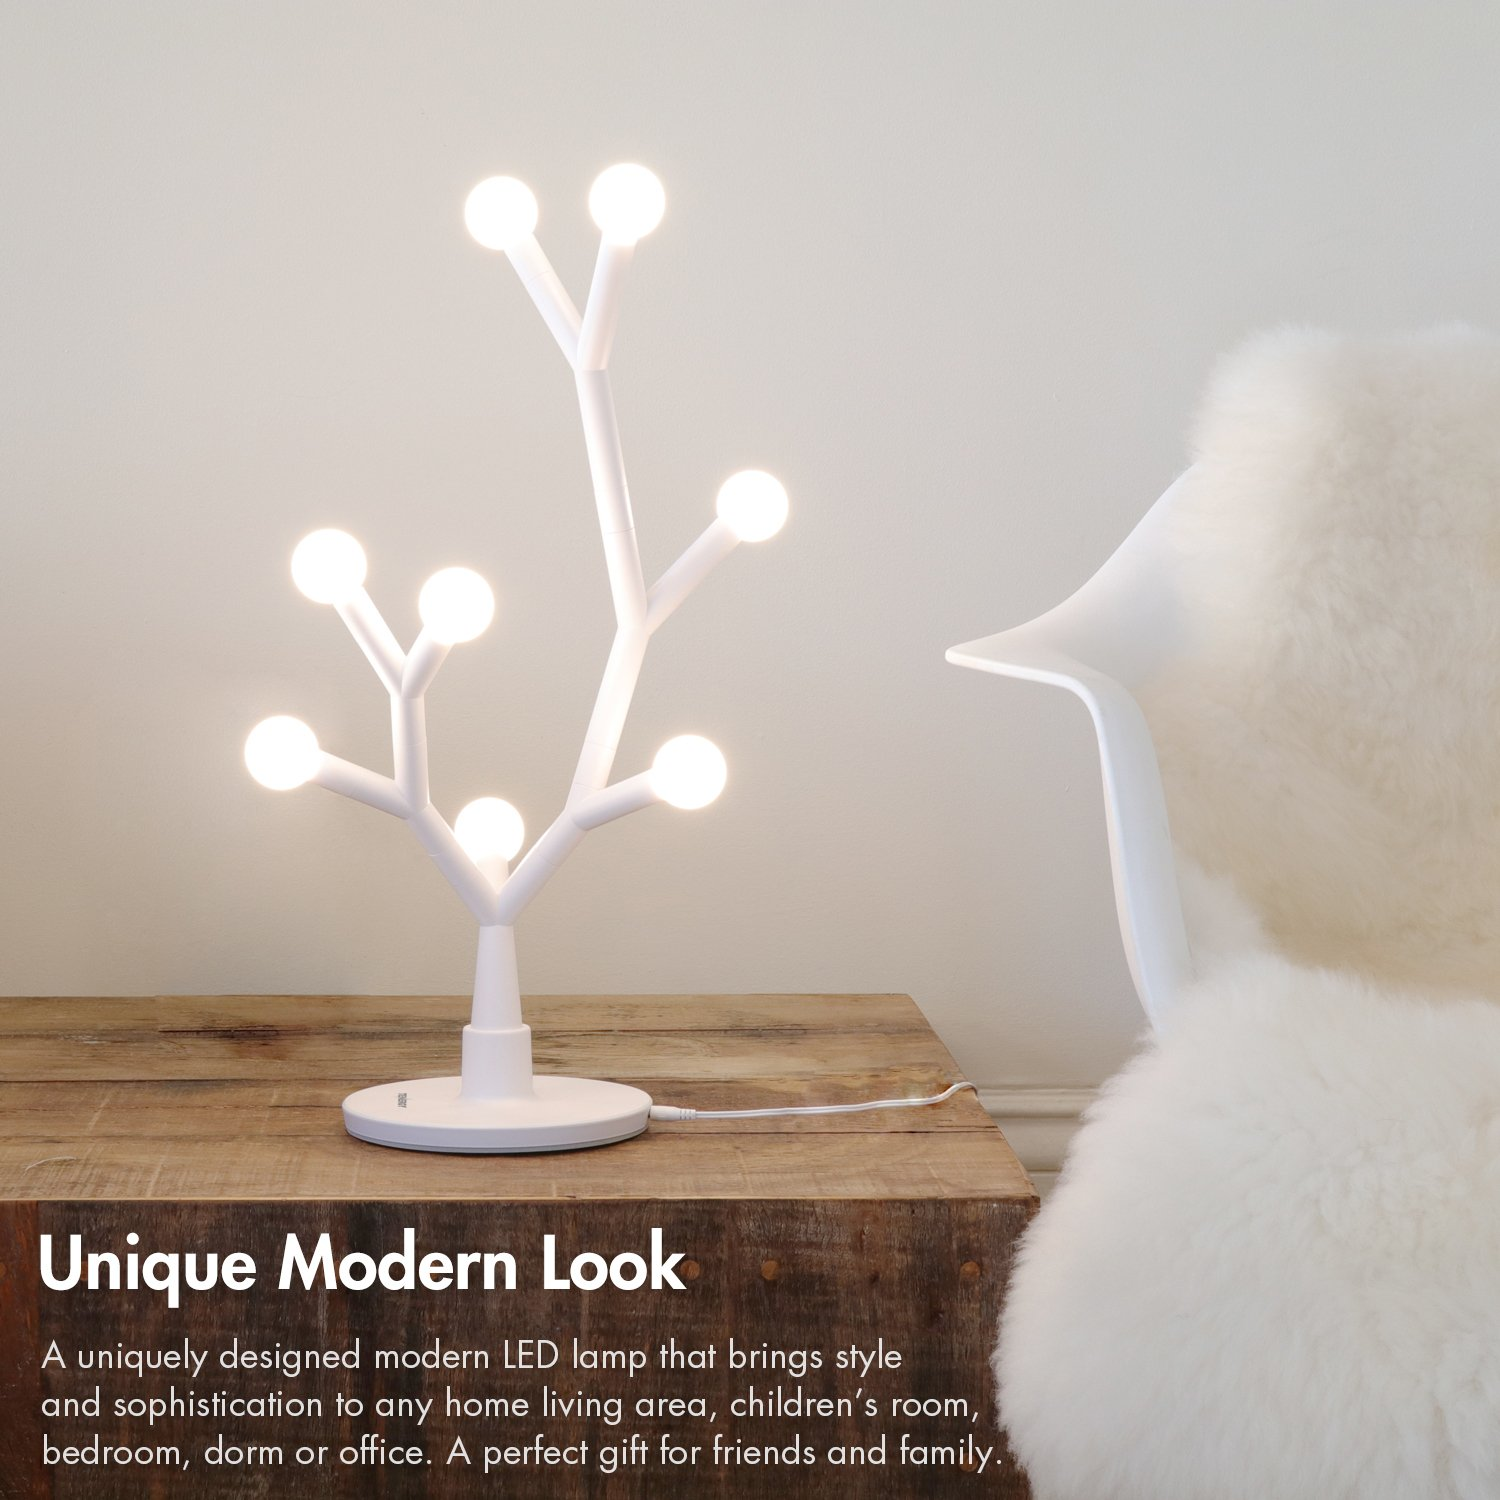 Tenergy Lumi Bloom Modern Table Lamp 8W 750LM LED DIY Nightstand Lamp Transformable for Hundreds Possible Shapes with 8 Warm White Bulbs Creative Stylish Lamp for Living Room Bedroom Office Ideal Gift by Tenergy (Image #2)